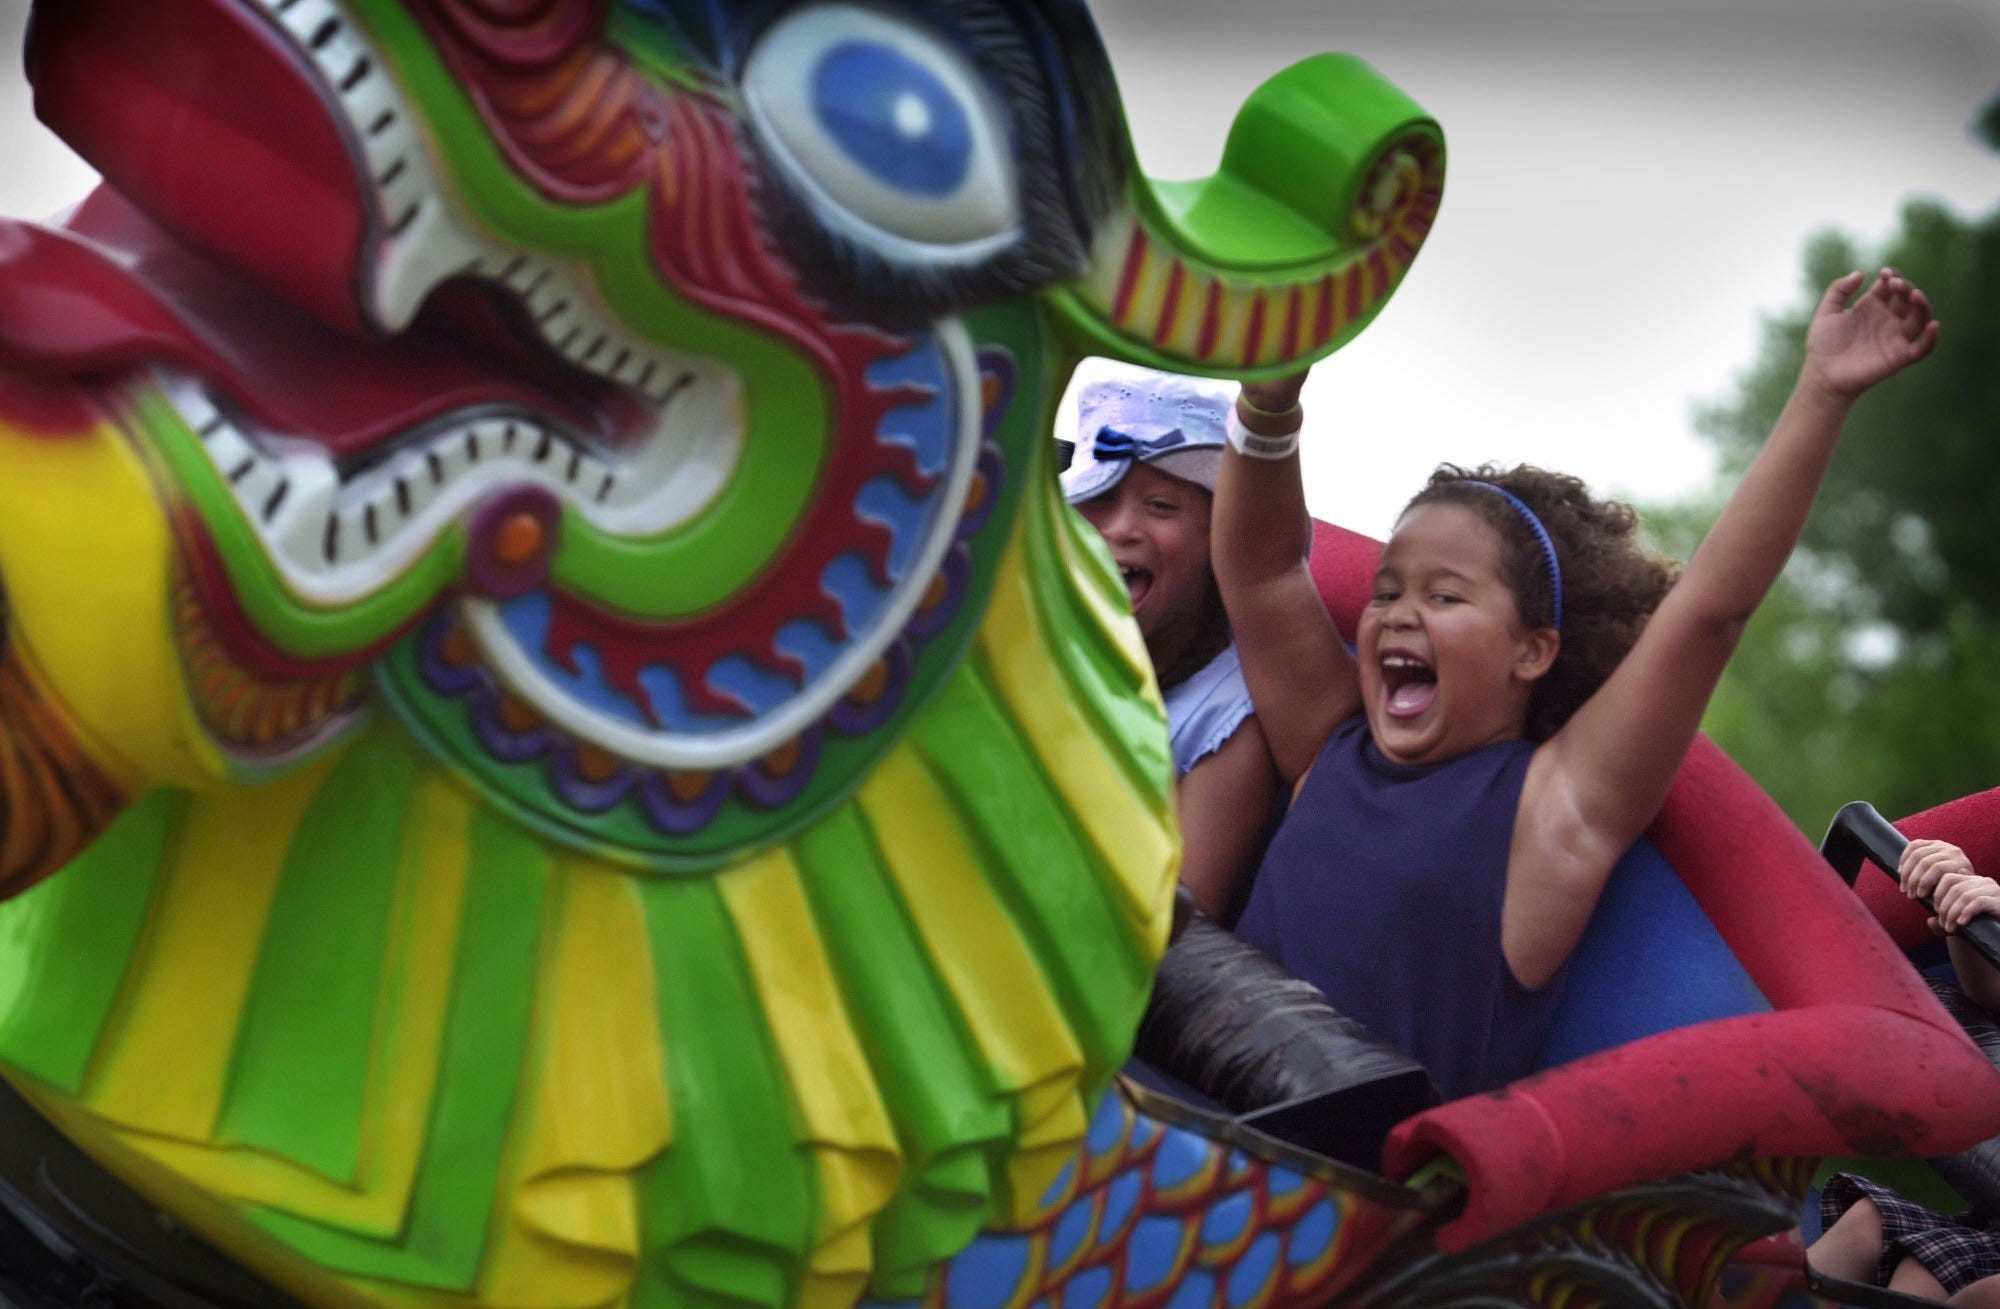 sc 1 st  Waukesha County Now & Must-see attractions at the 175th Waukesha County Fair